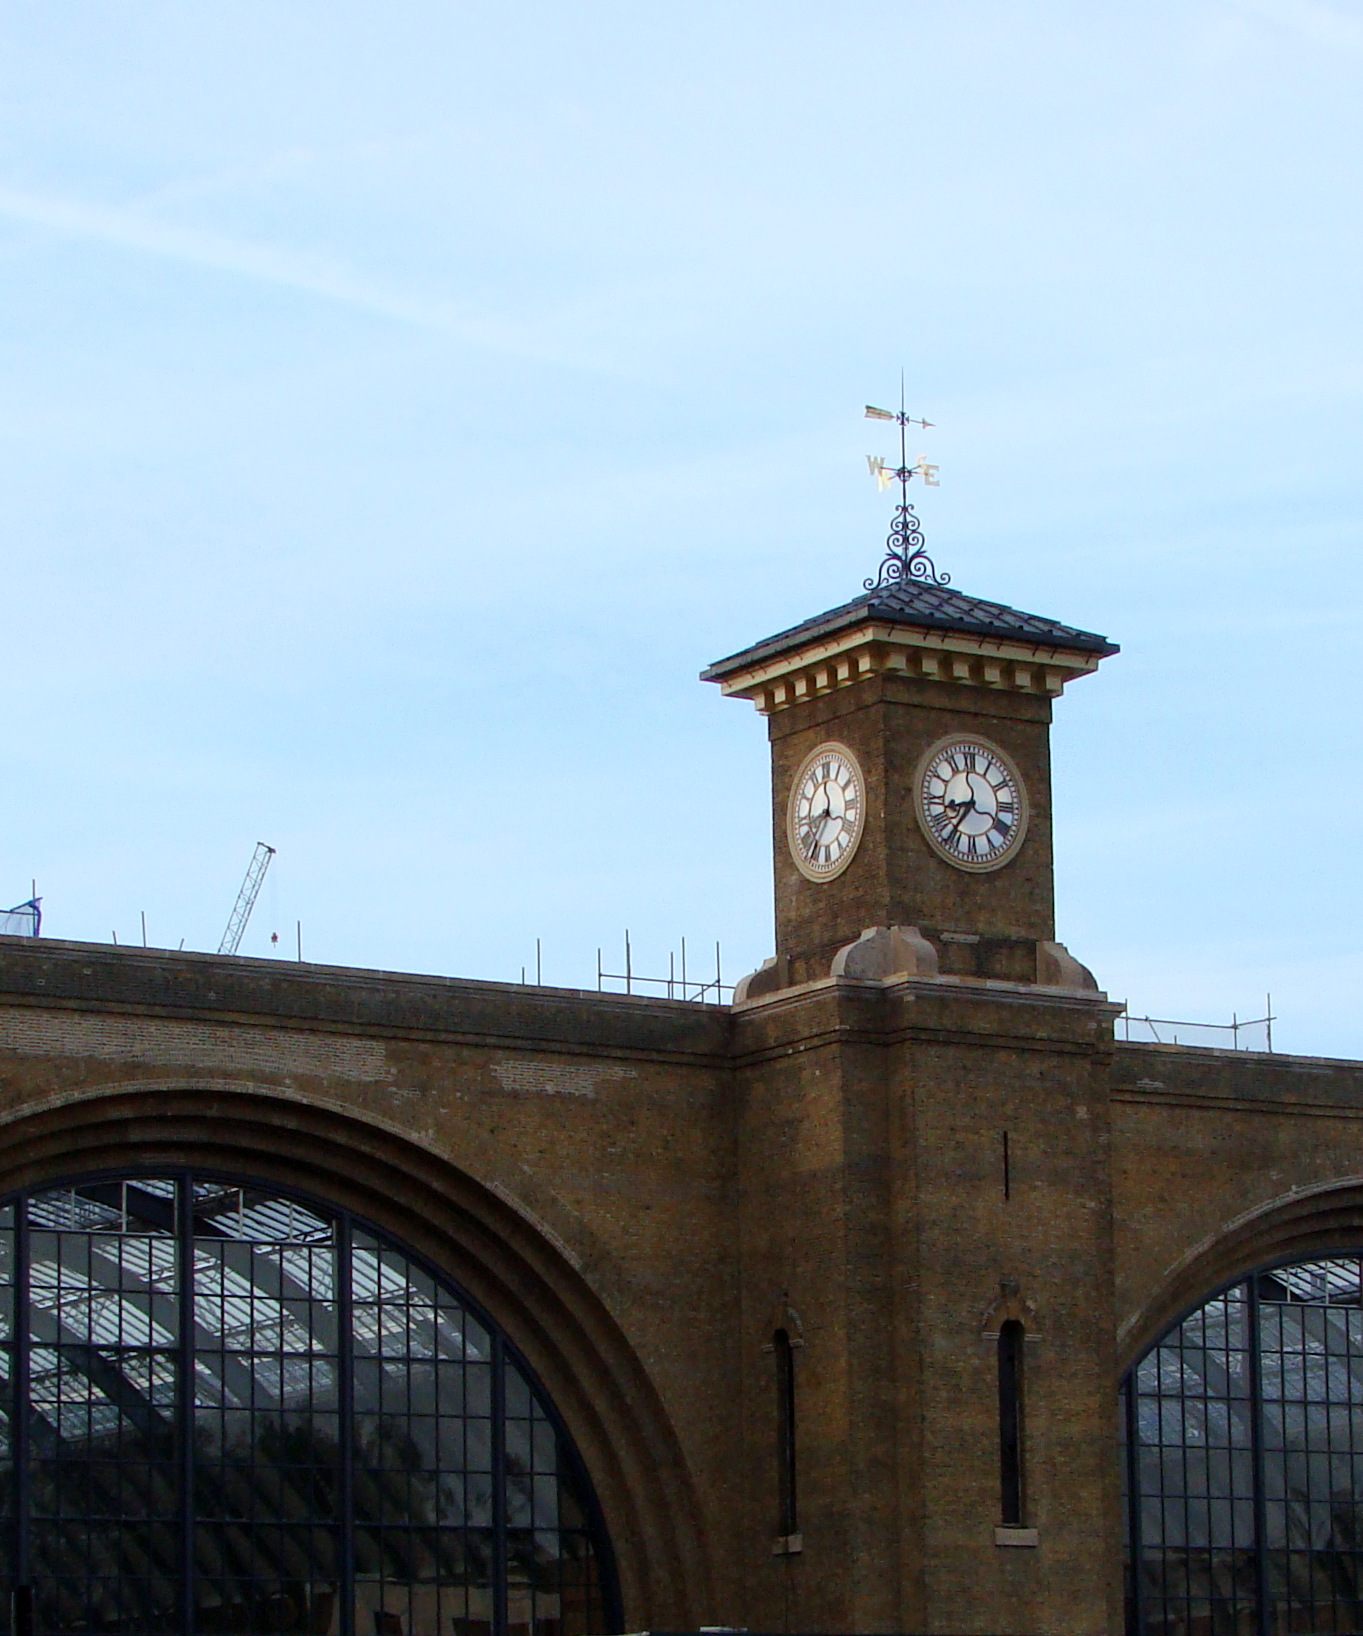 King's Cross Station (exterior: clock tower)